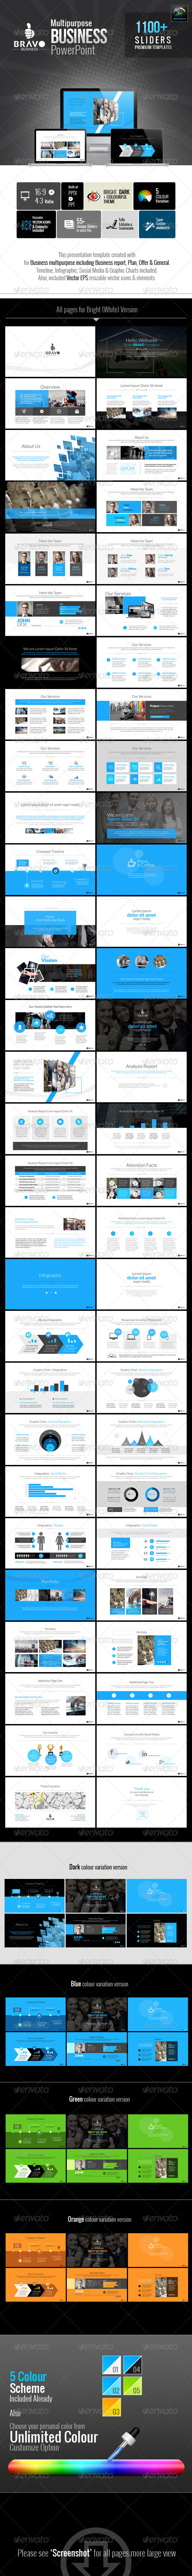 GraphicRiver Bravo Multipurpose Business Templates 6824598